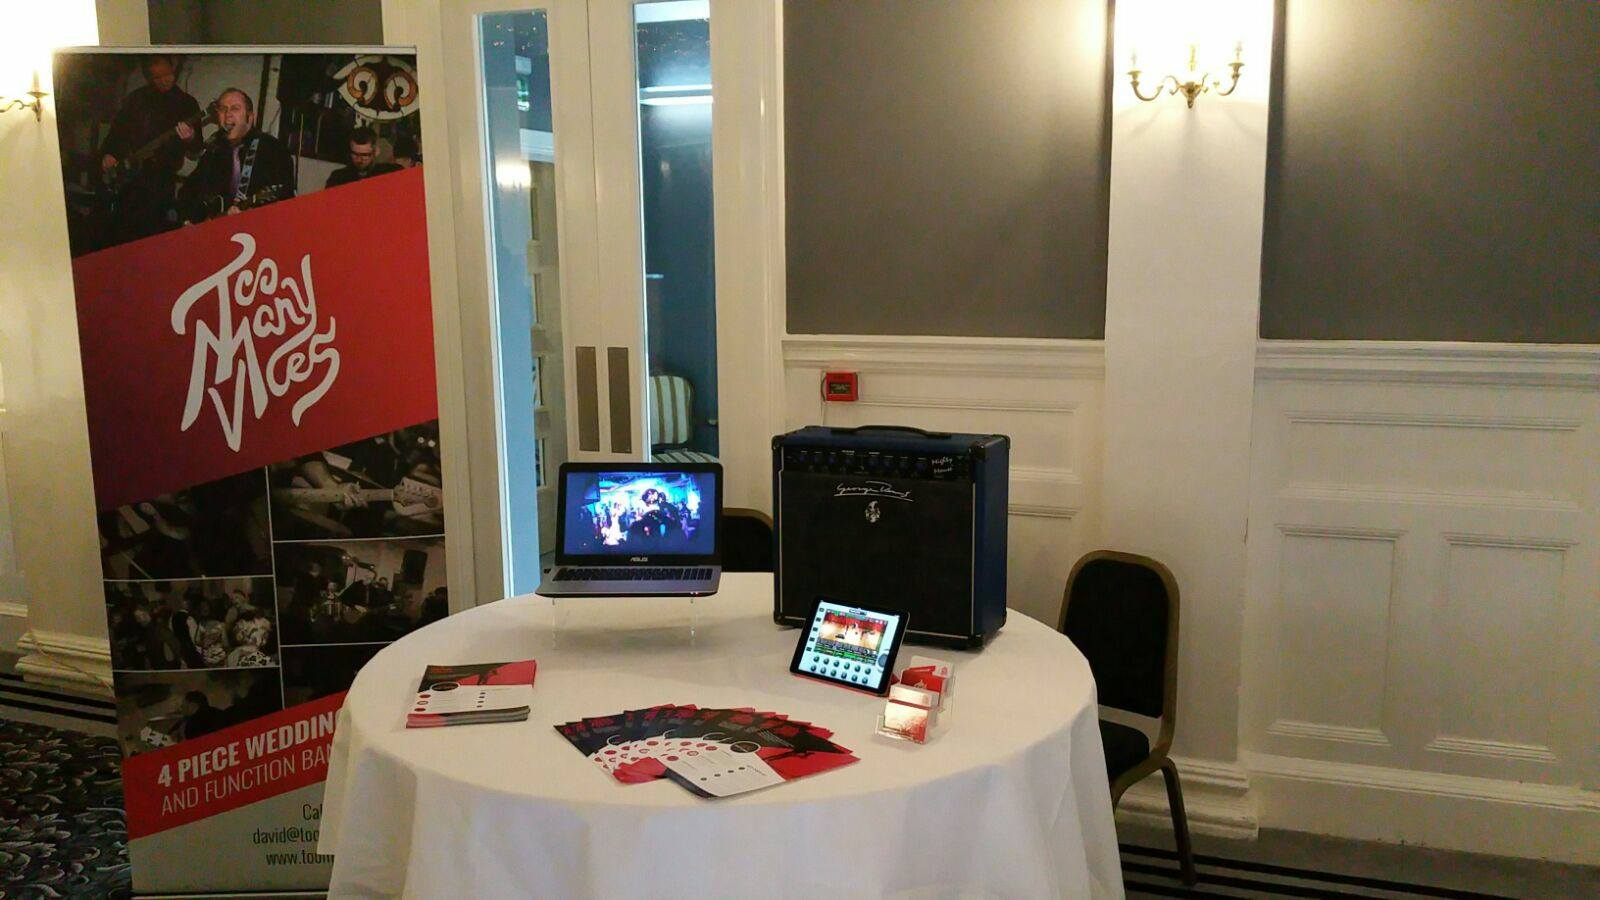 Greenock Wedding Band - Tontine Hotel Stand